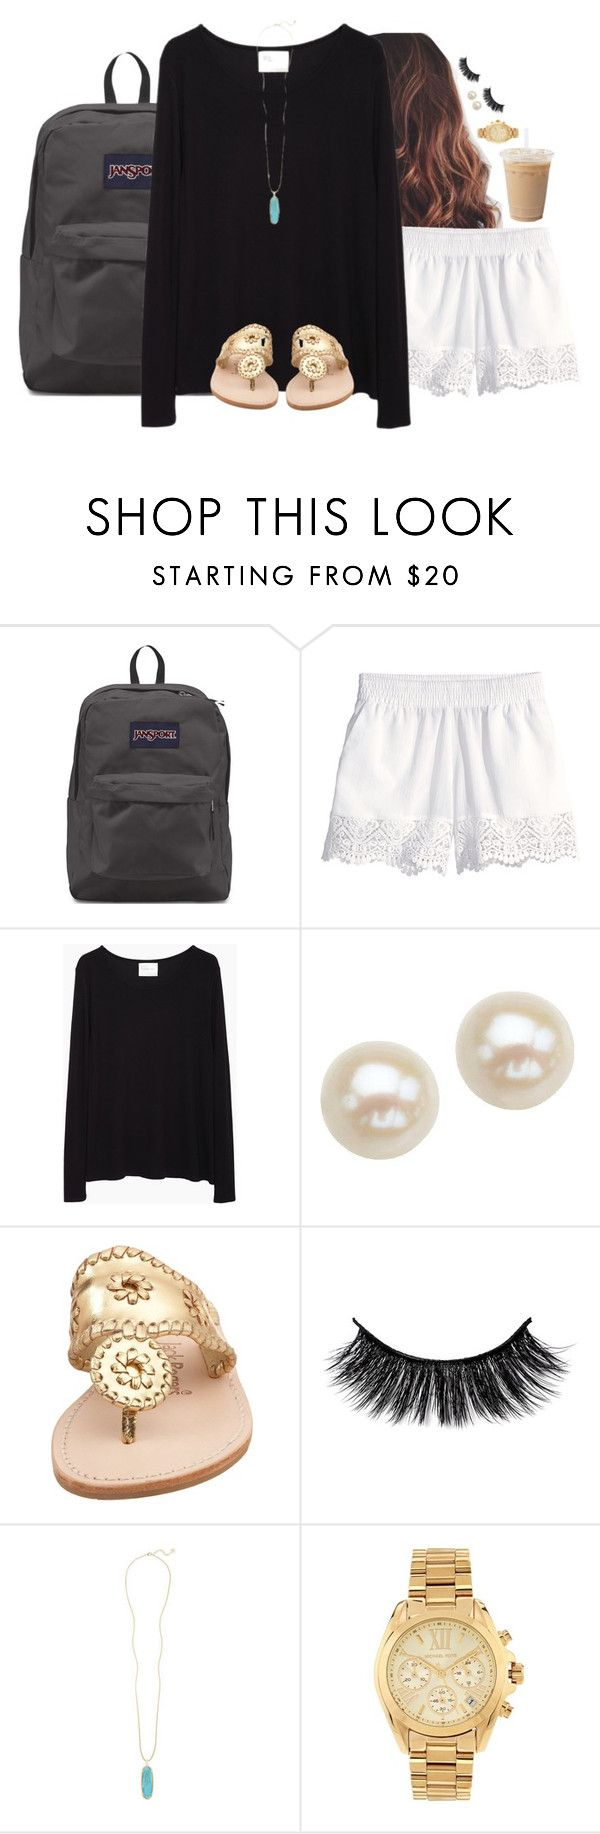 """My ootd for tomorrow, what is everyone else wearing?"" by aweaver-2 on Polyvore featuring JanSport, H&M, La Garçonne Moderne, Honora, Jack Rogers, Kendra Scott and Michael Kors"